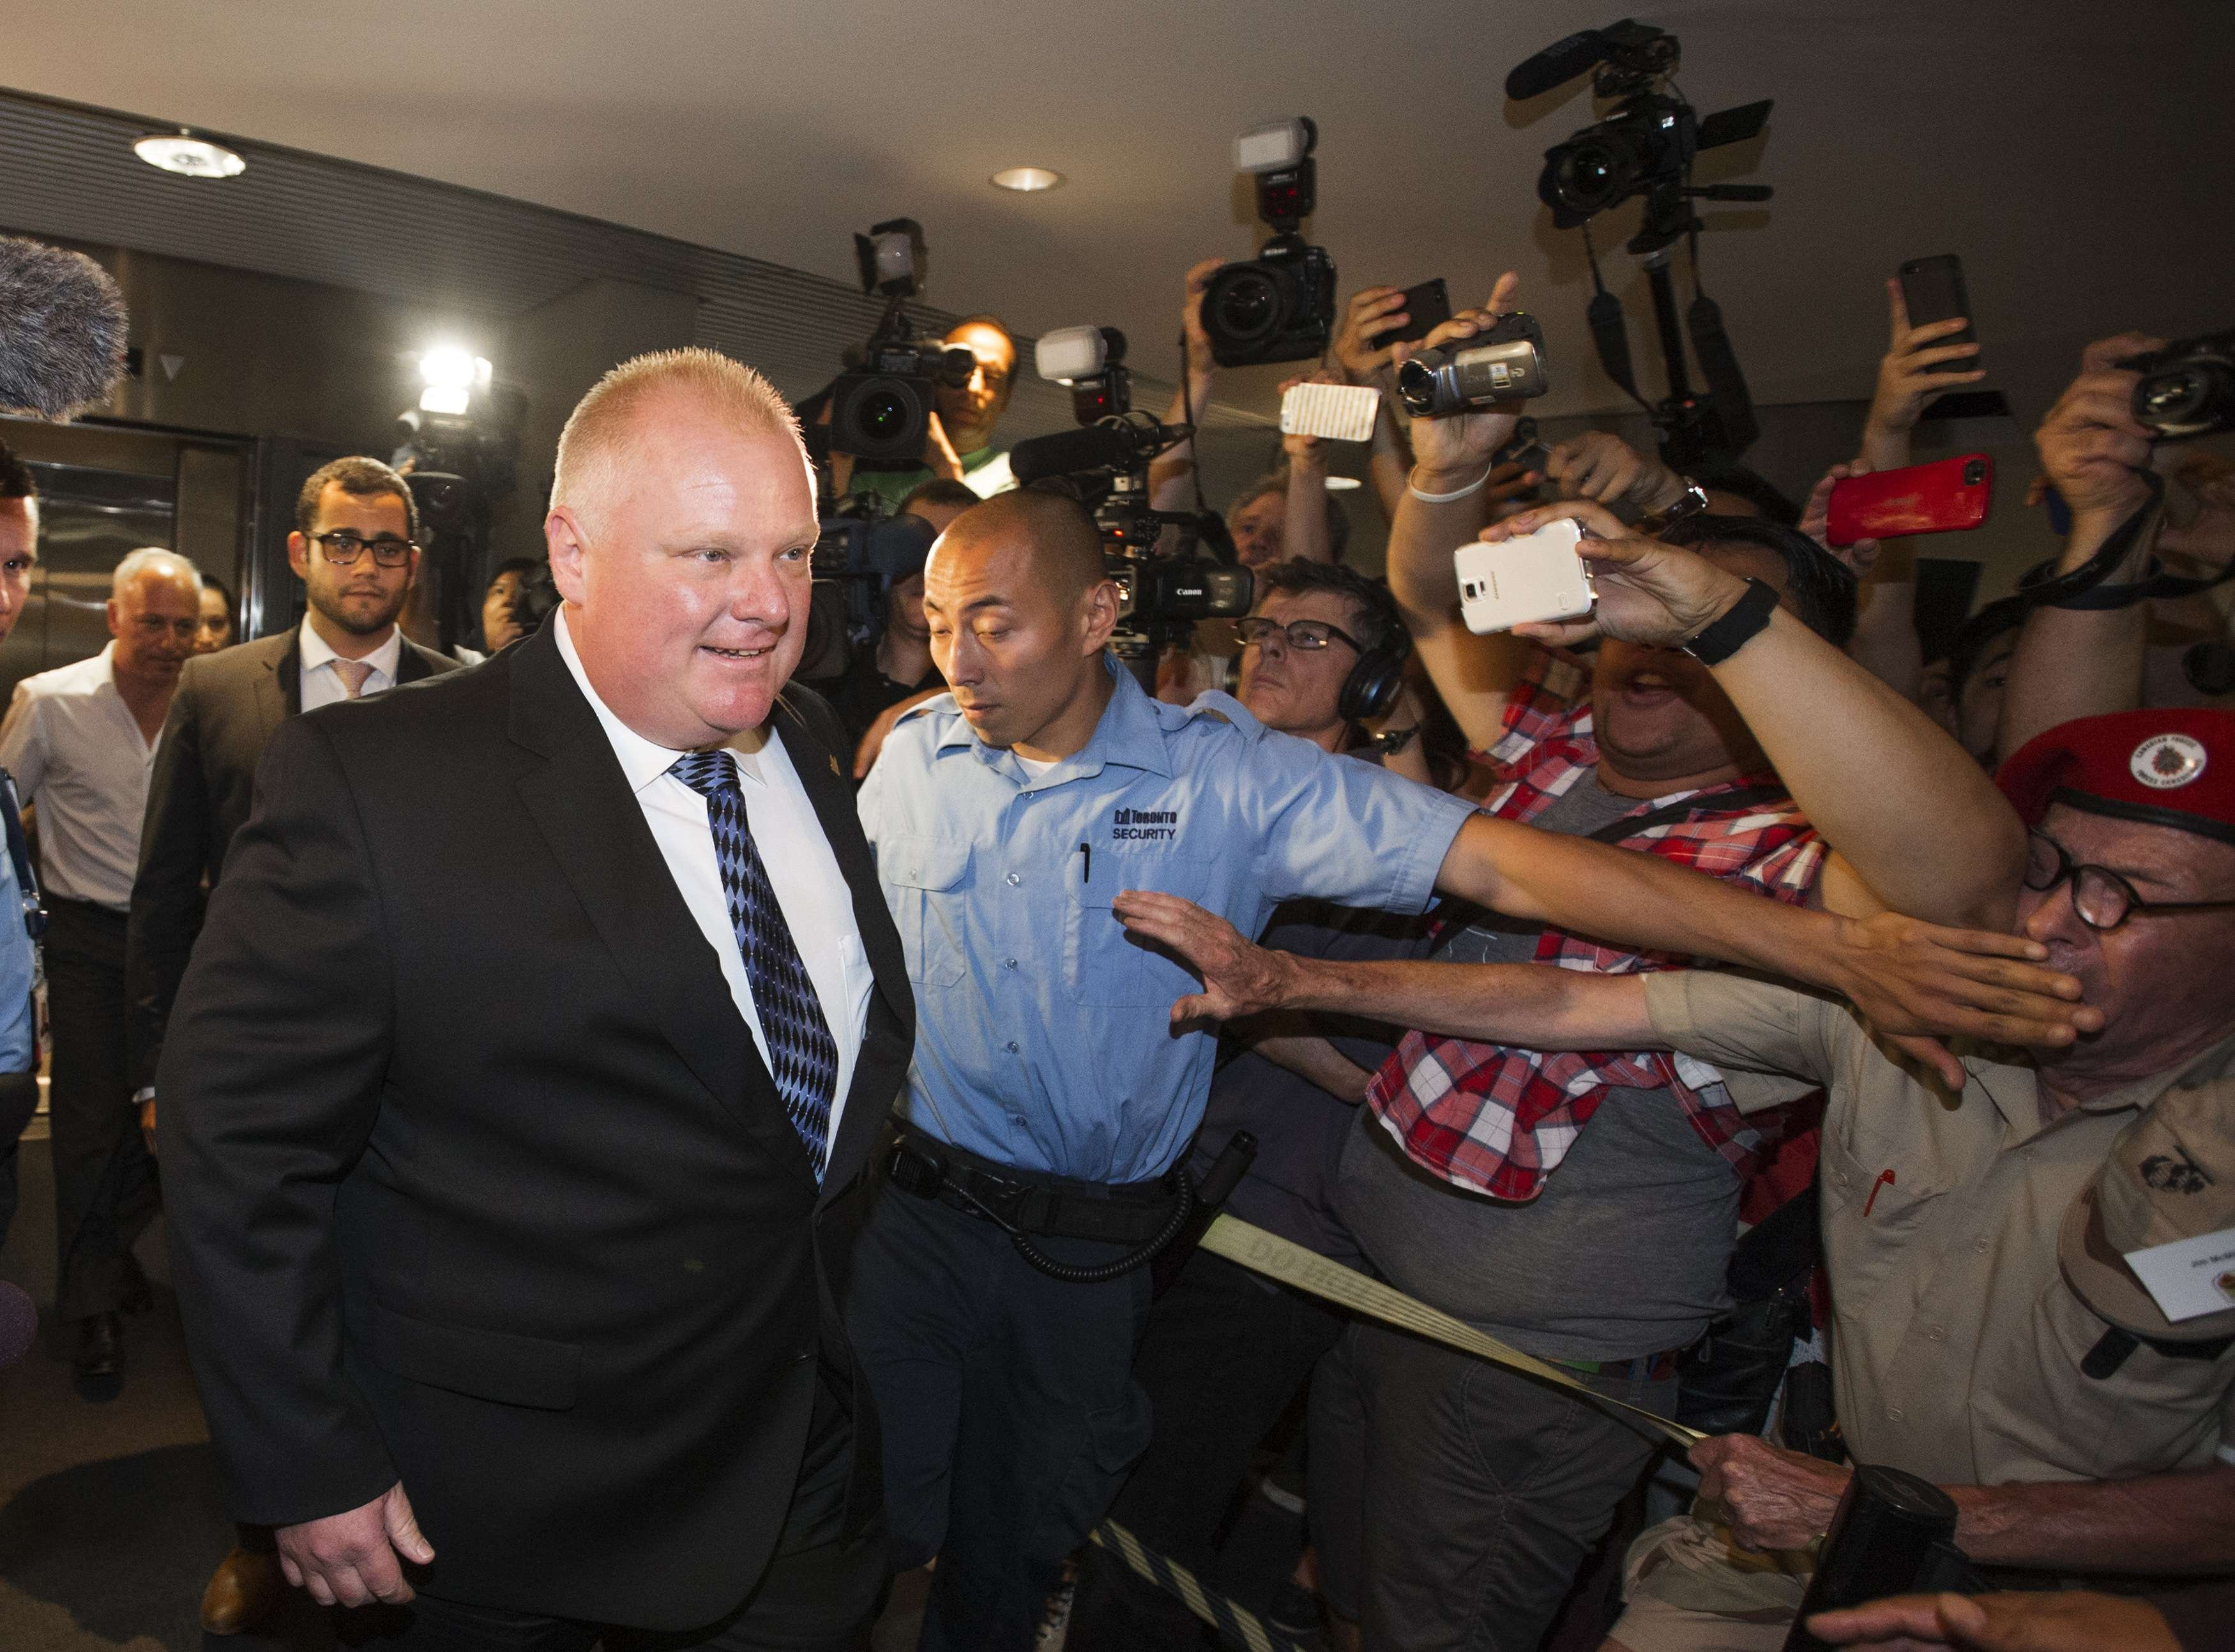 Toronto Mayor Rob Ford arrives at City Hall in Toronto June 30, 2014.